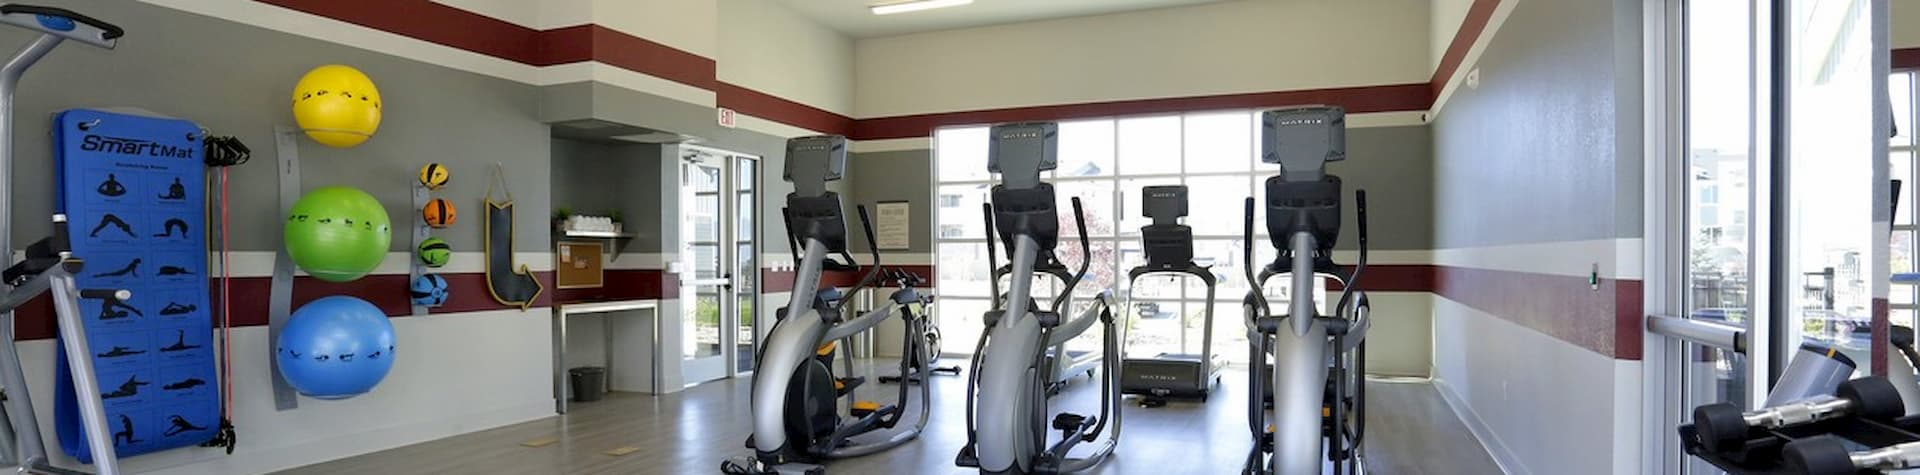 springs-at-allison-valley-colorado-springs-co-fitness-center (2)